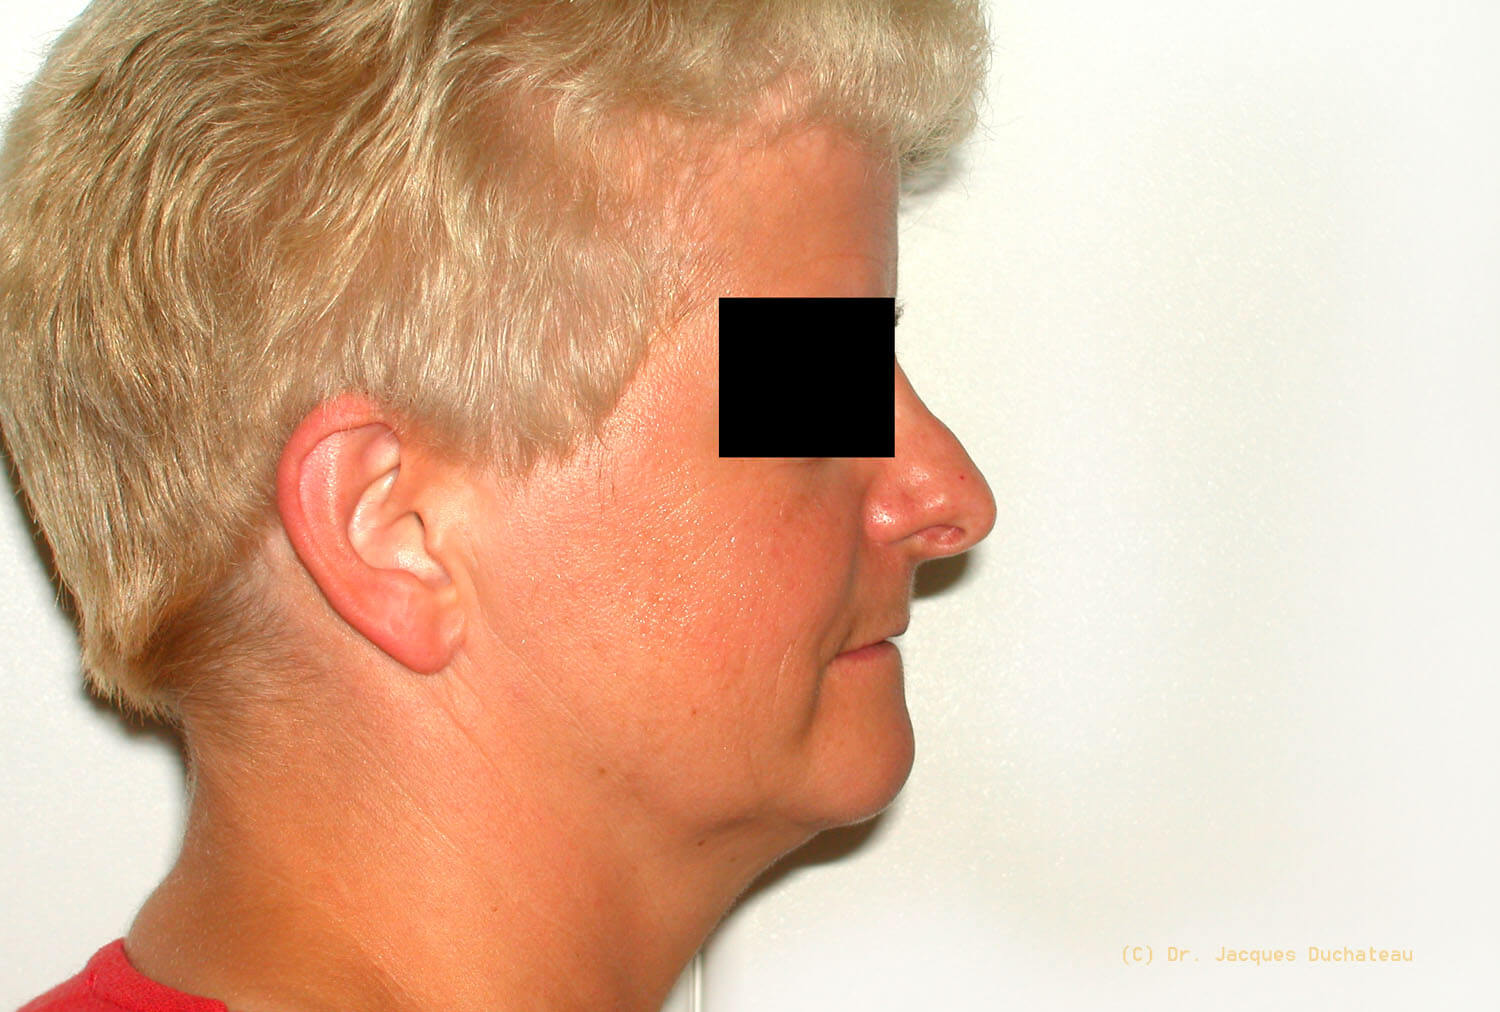 photo-avant-apres-rhinoplastie-exemple-3-2jpg